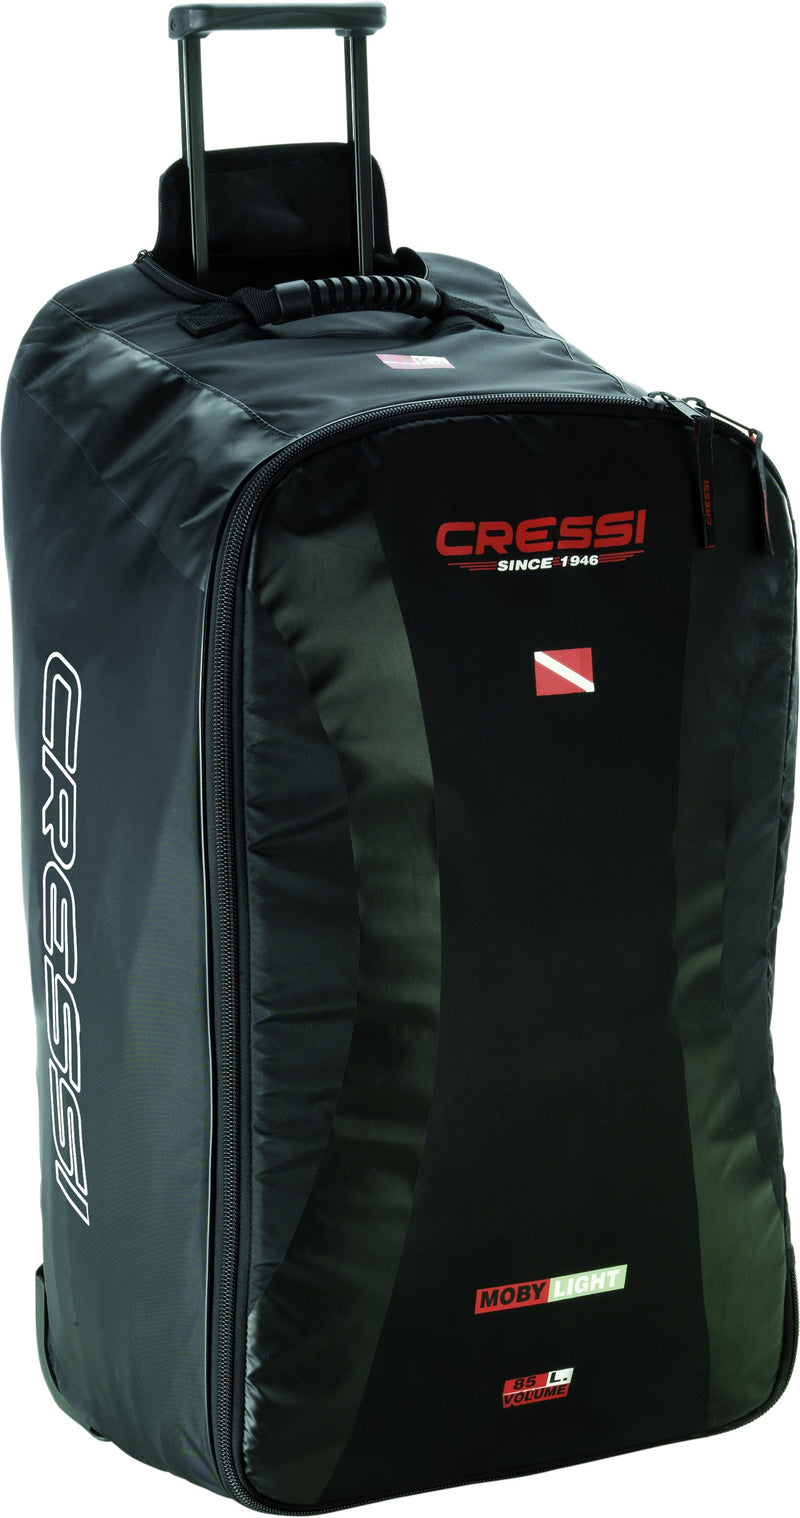 Cressi Moby Light Bag Diving - Dive & Fish